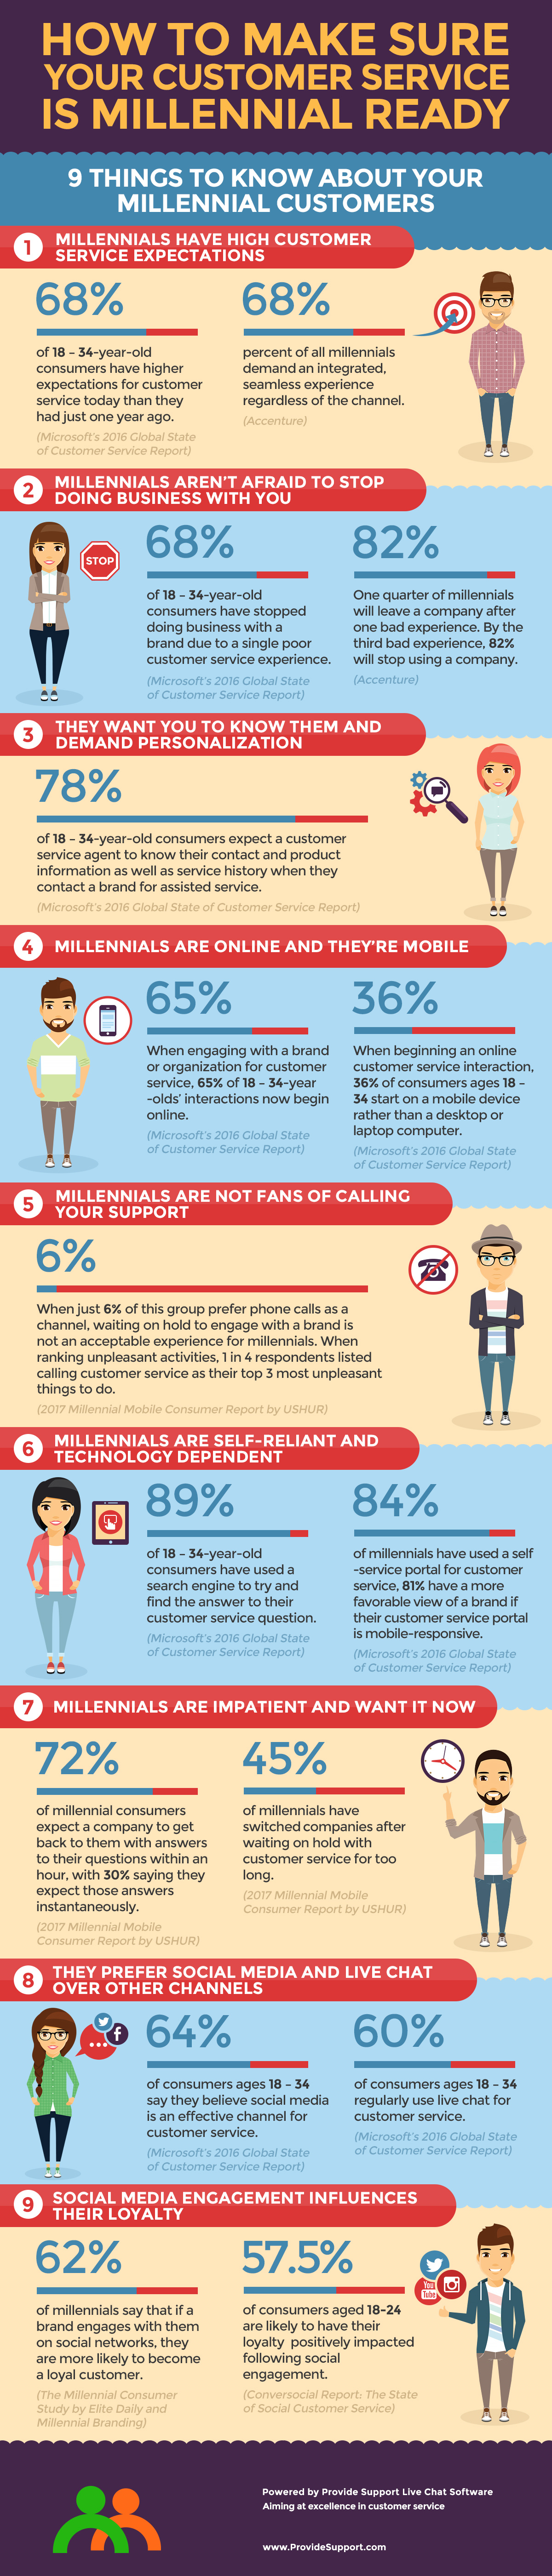 9 things to know to make your customer service is millennial ready